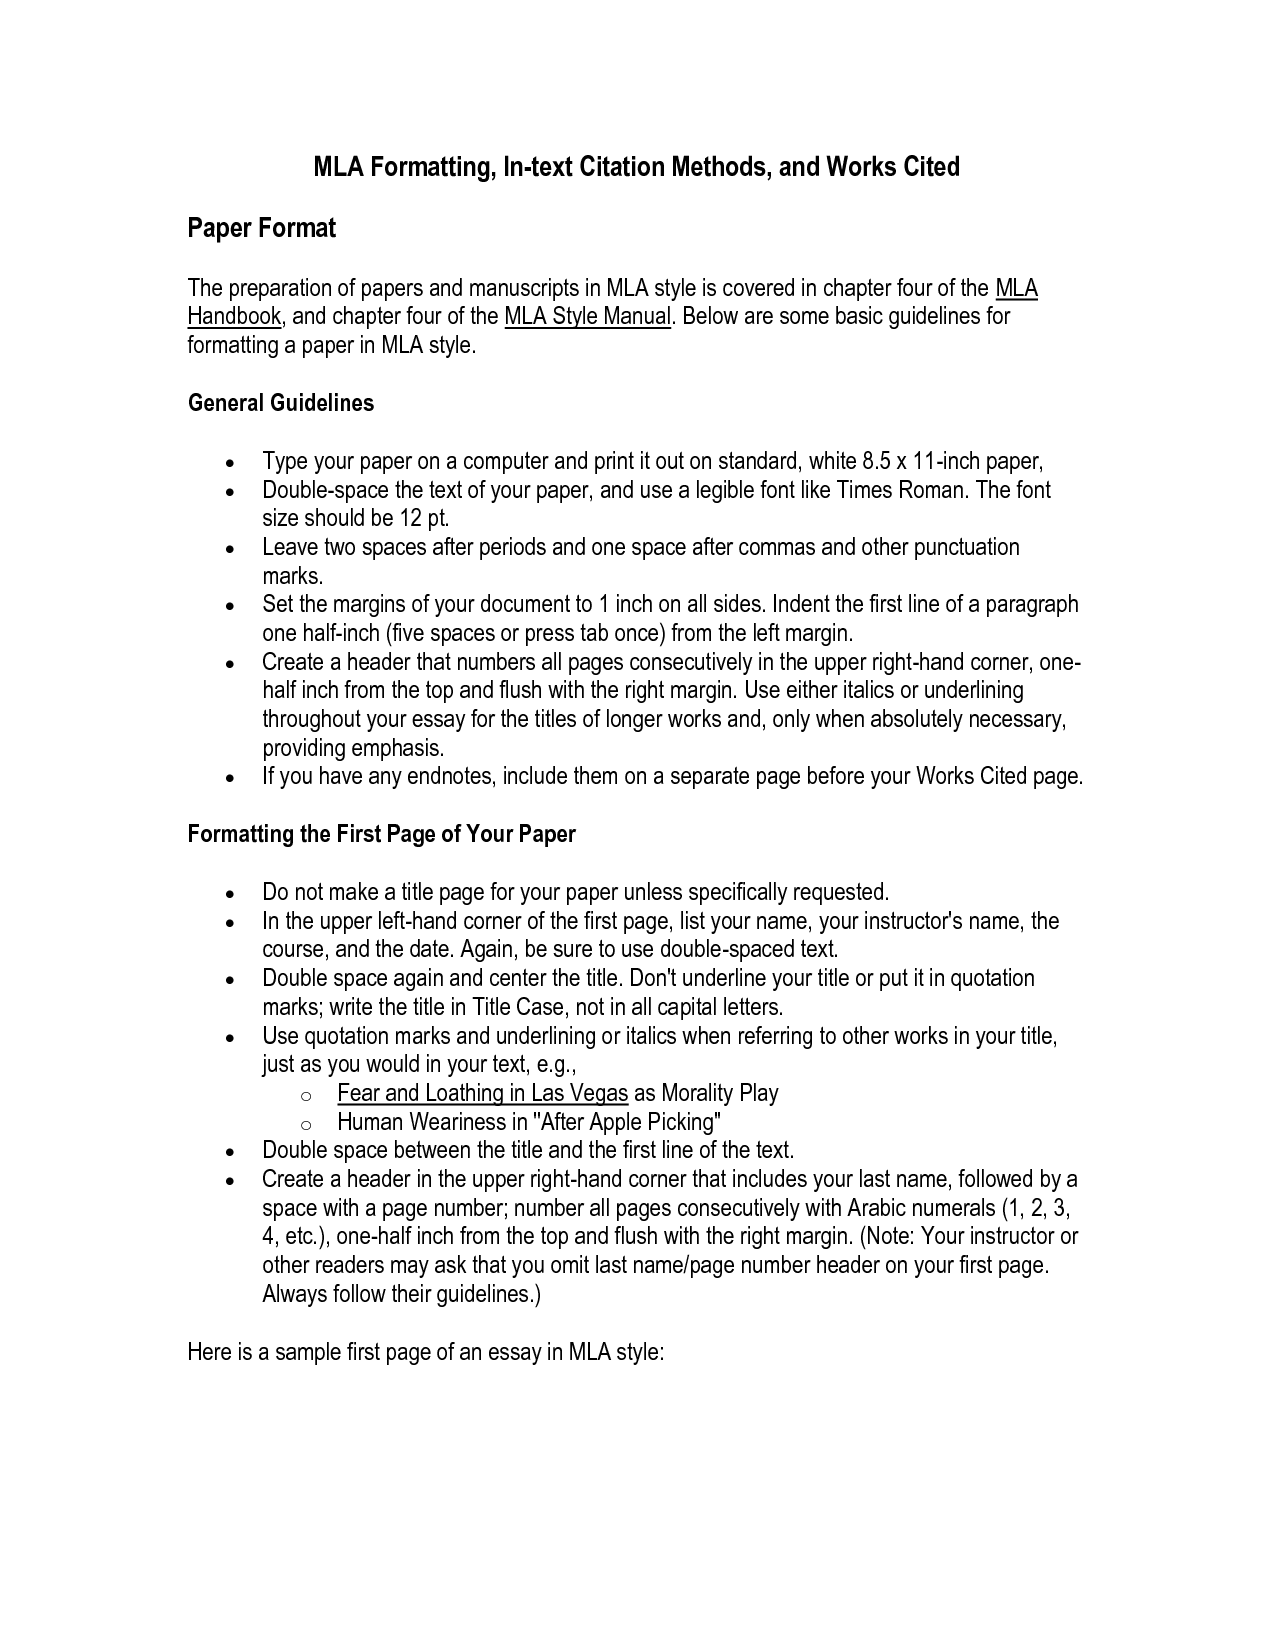 020 Essay Example How To Cite Work In An Stupendous Nber Working Paper Mla A Web Source Full